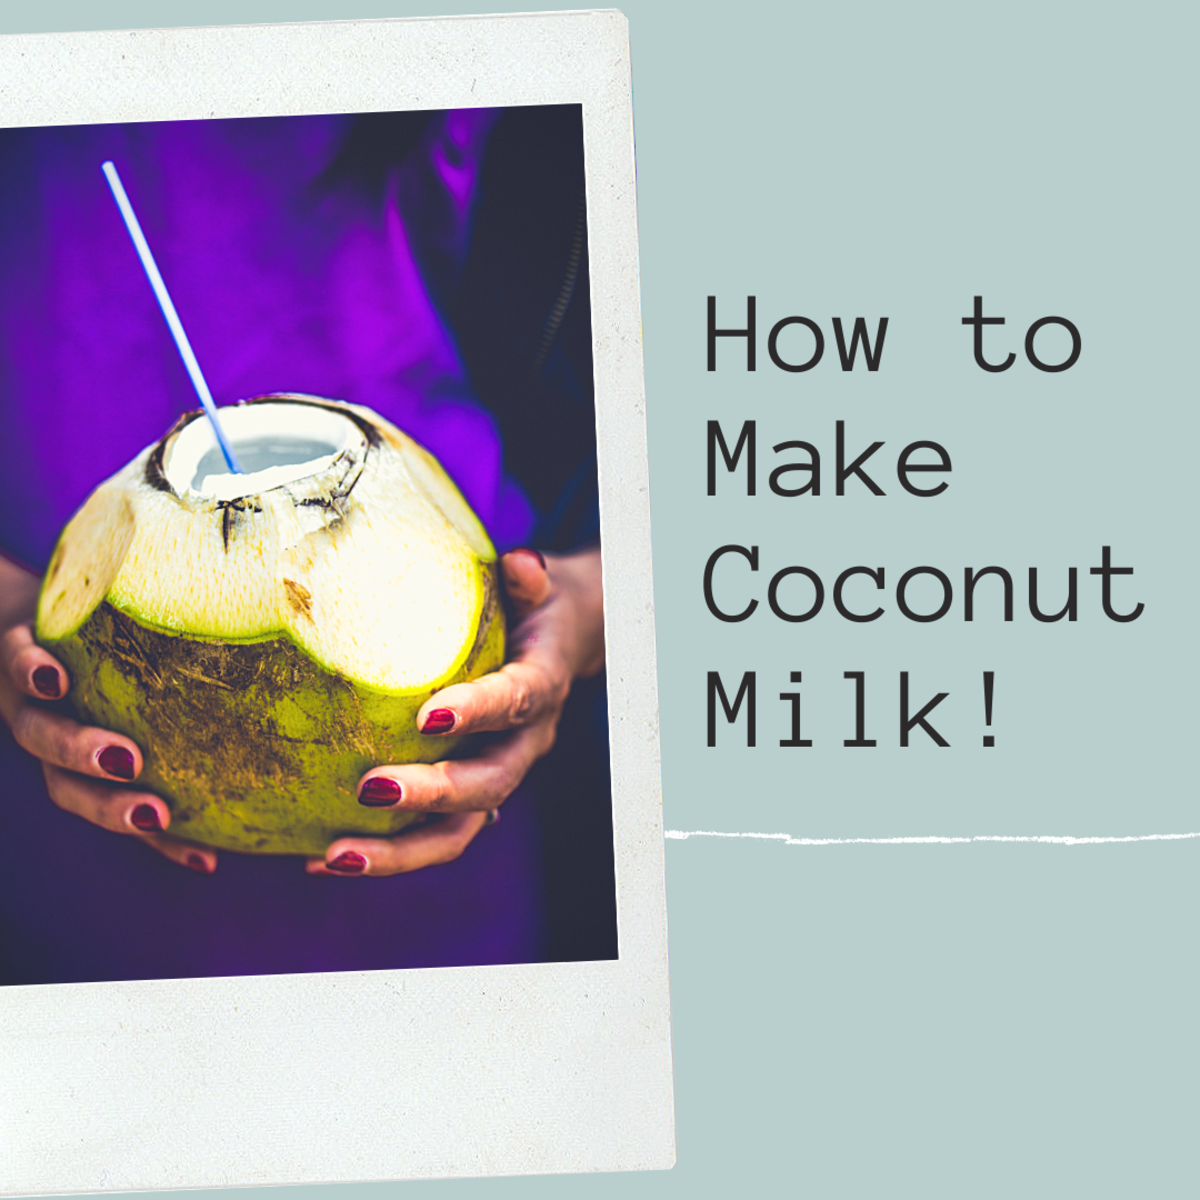 Make coconut milk at home to save money.